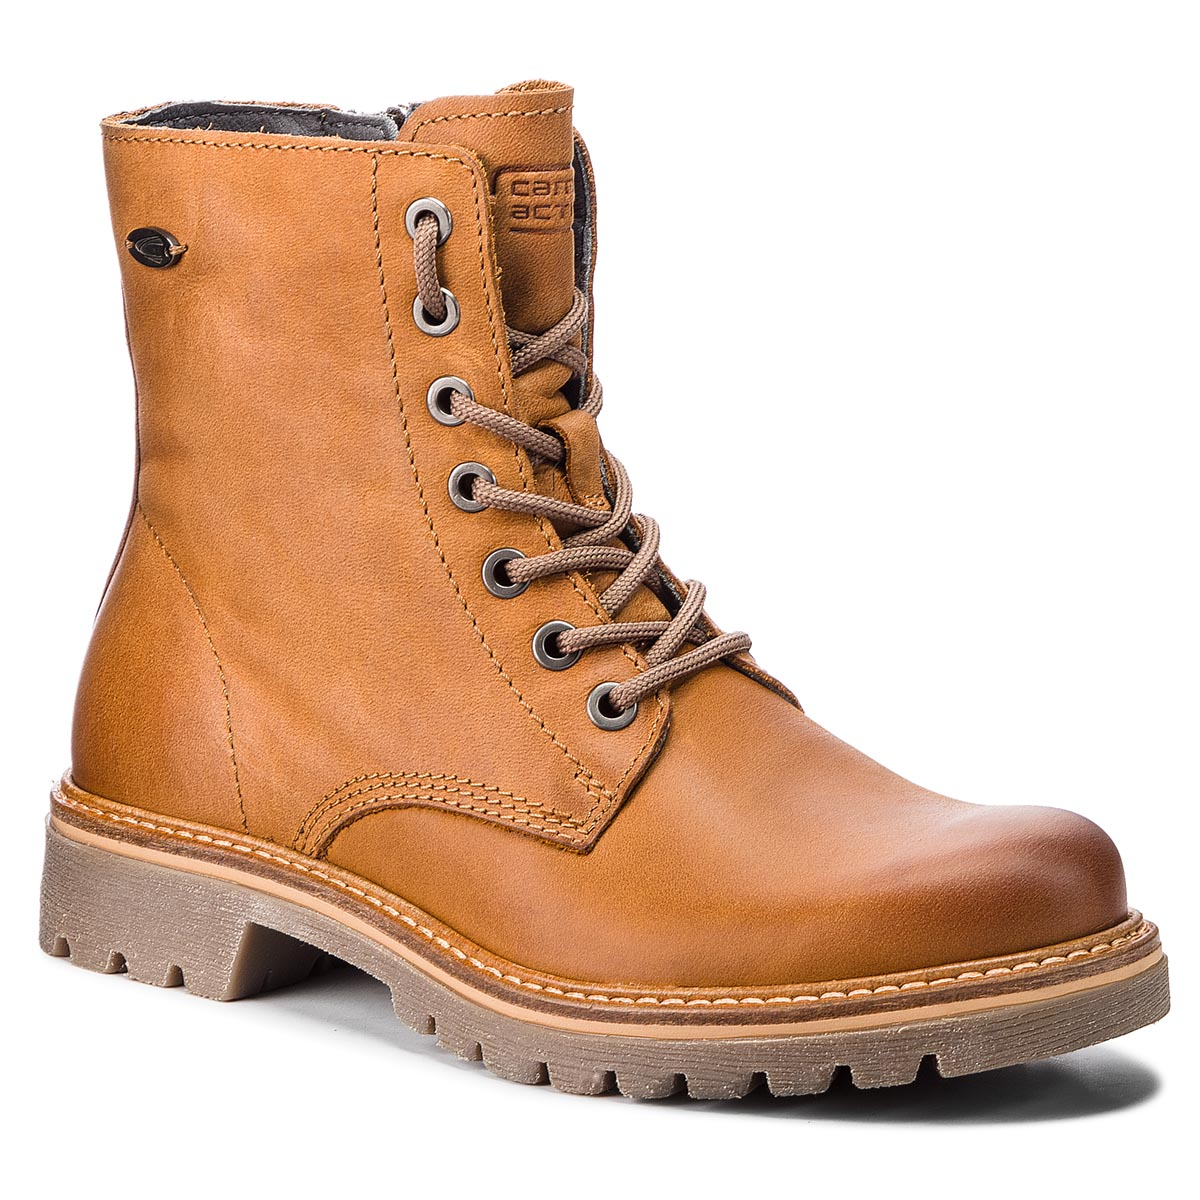 Trappers CAMEL ACTIVE - Canberra 873.75.03 Brandy